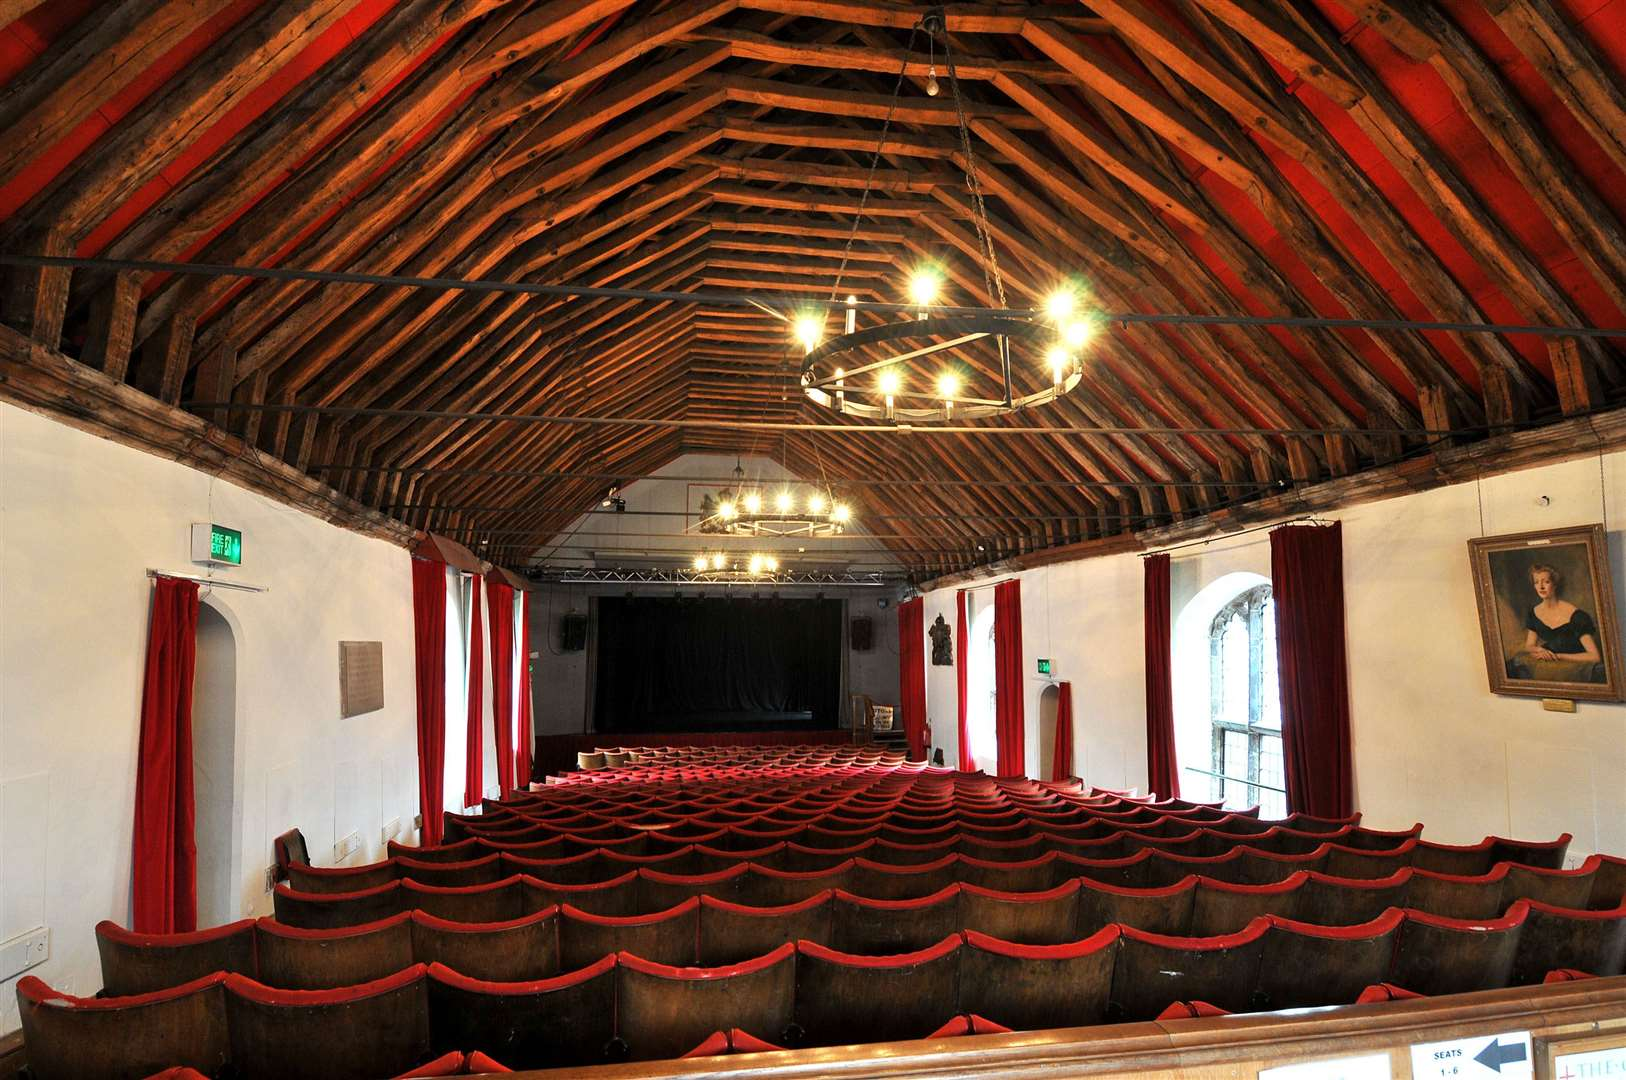 King's Lynn Arts Centre - St George's Guildhall (6468321)